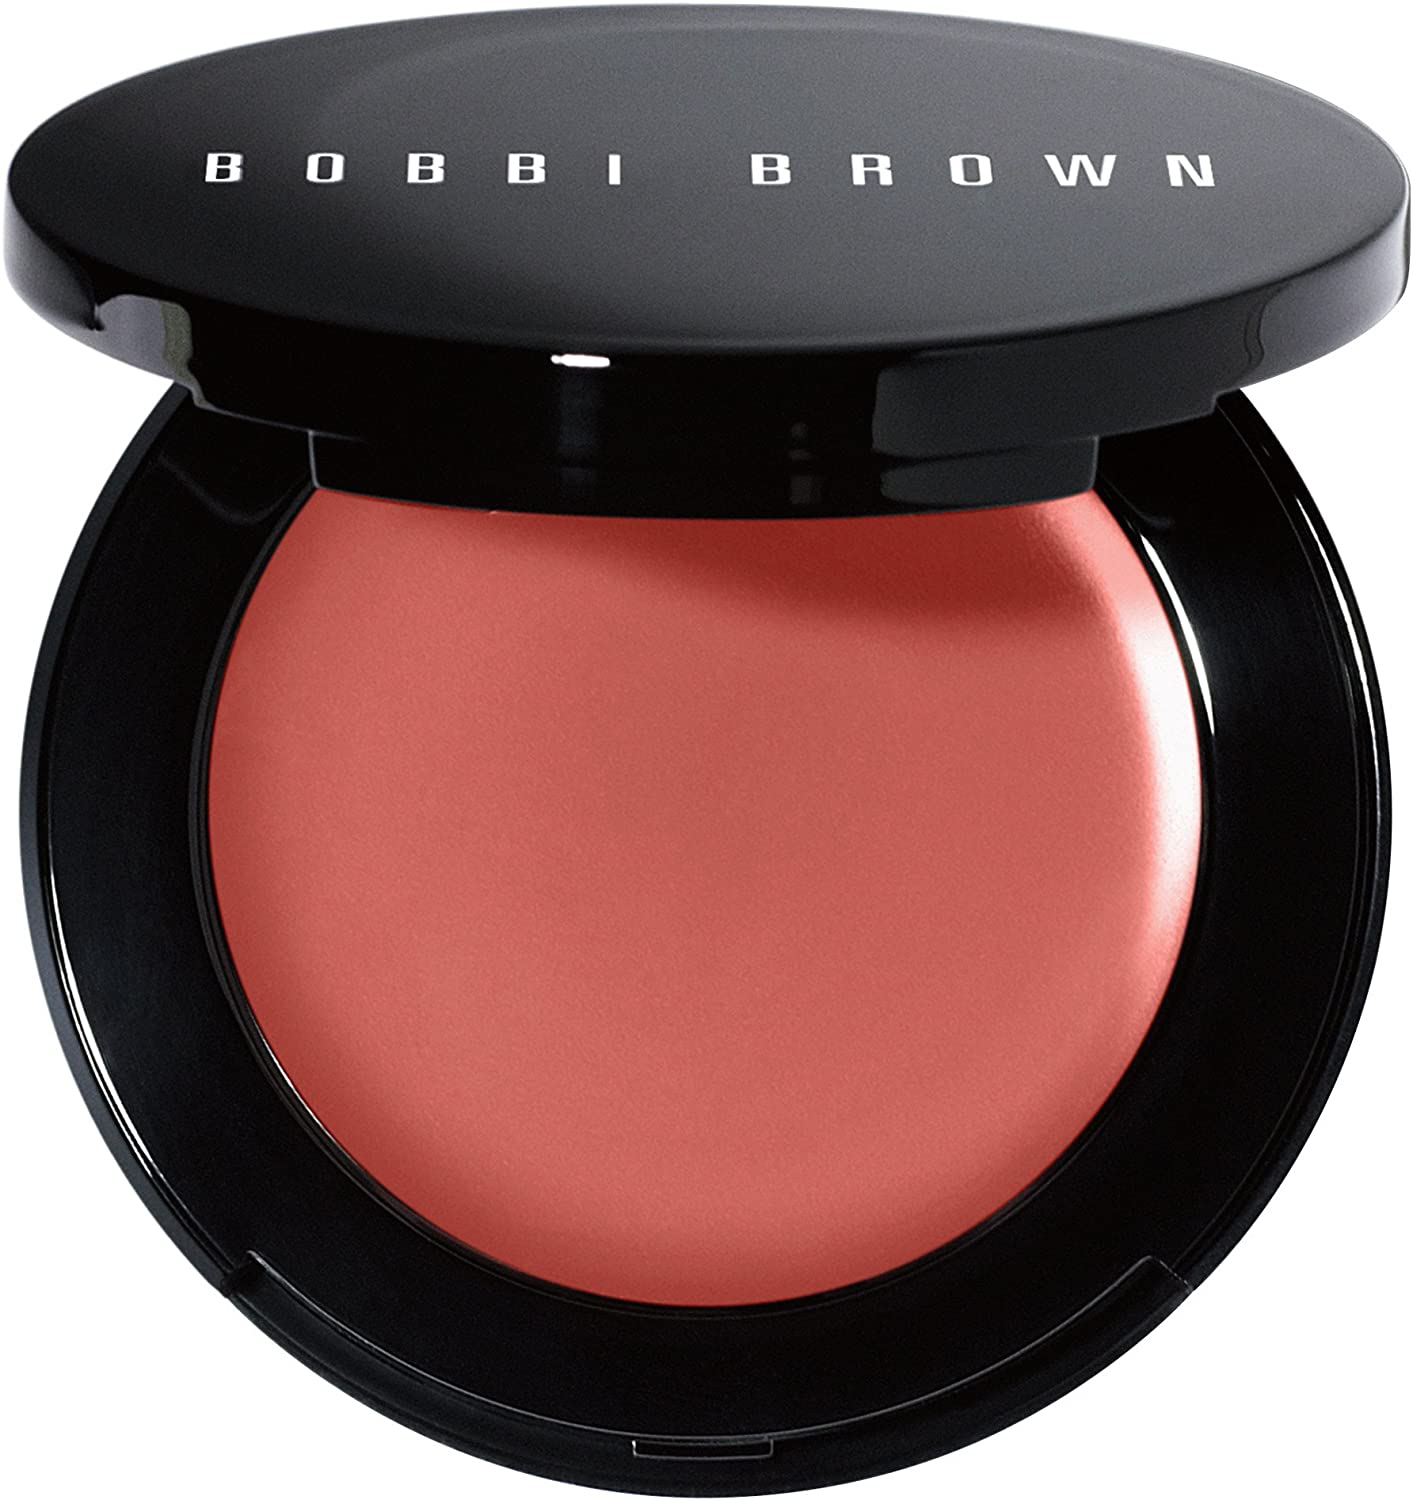 Bobby Brown Pot Rouge 06 Powd Pink